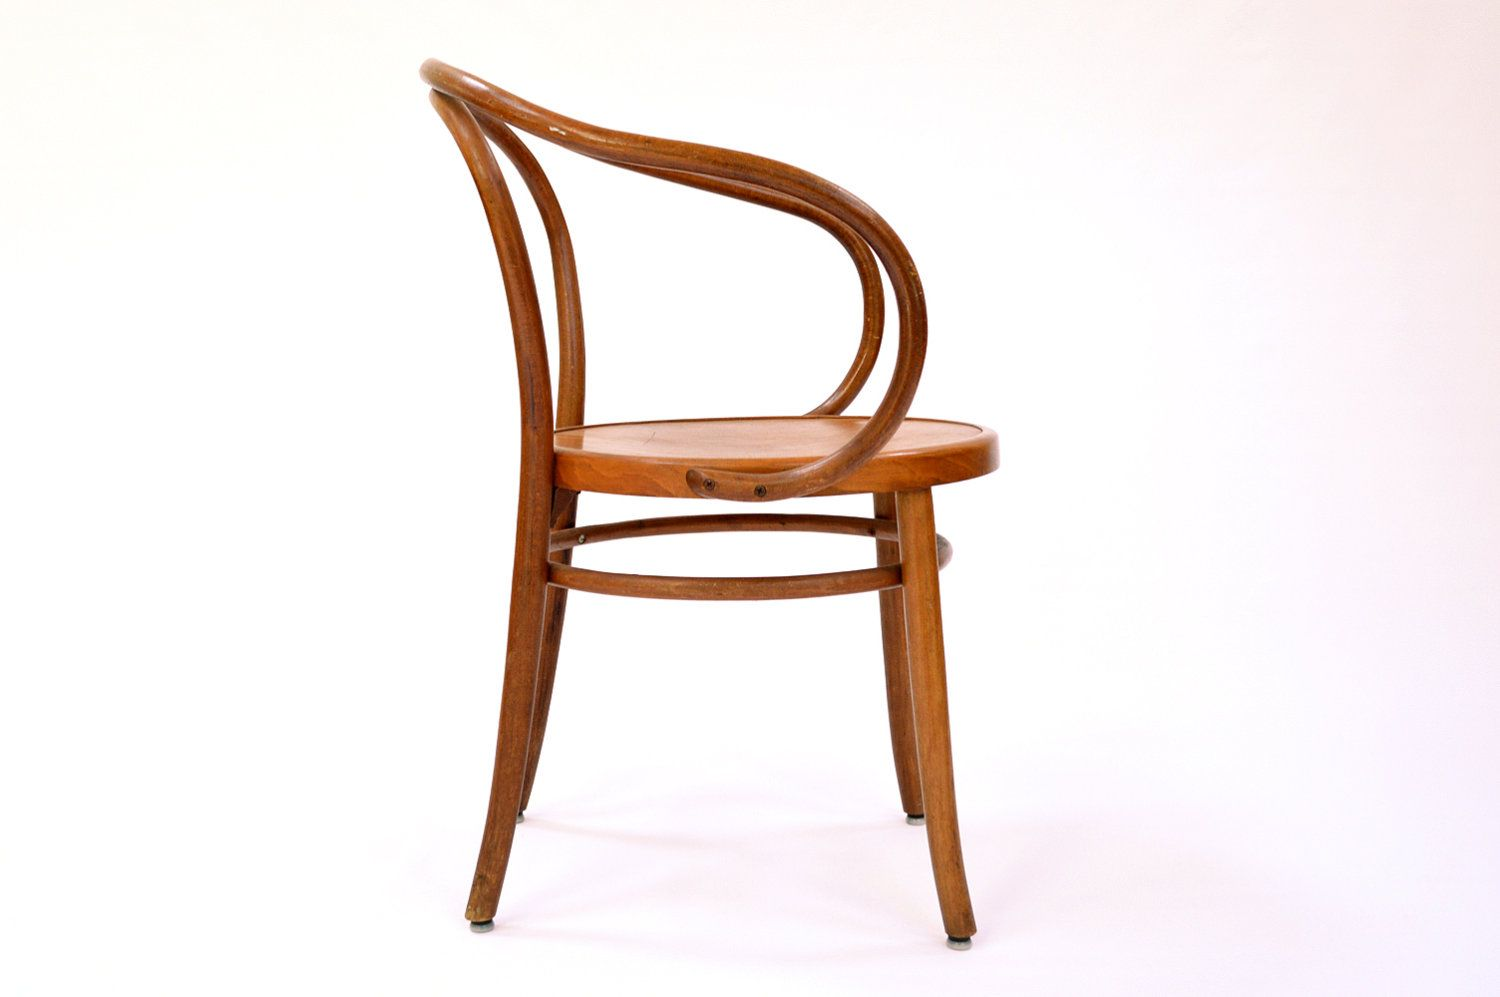 Sedie Thonet ~ On hold thonet corbusier chair has label arms mart stam and